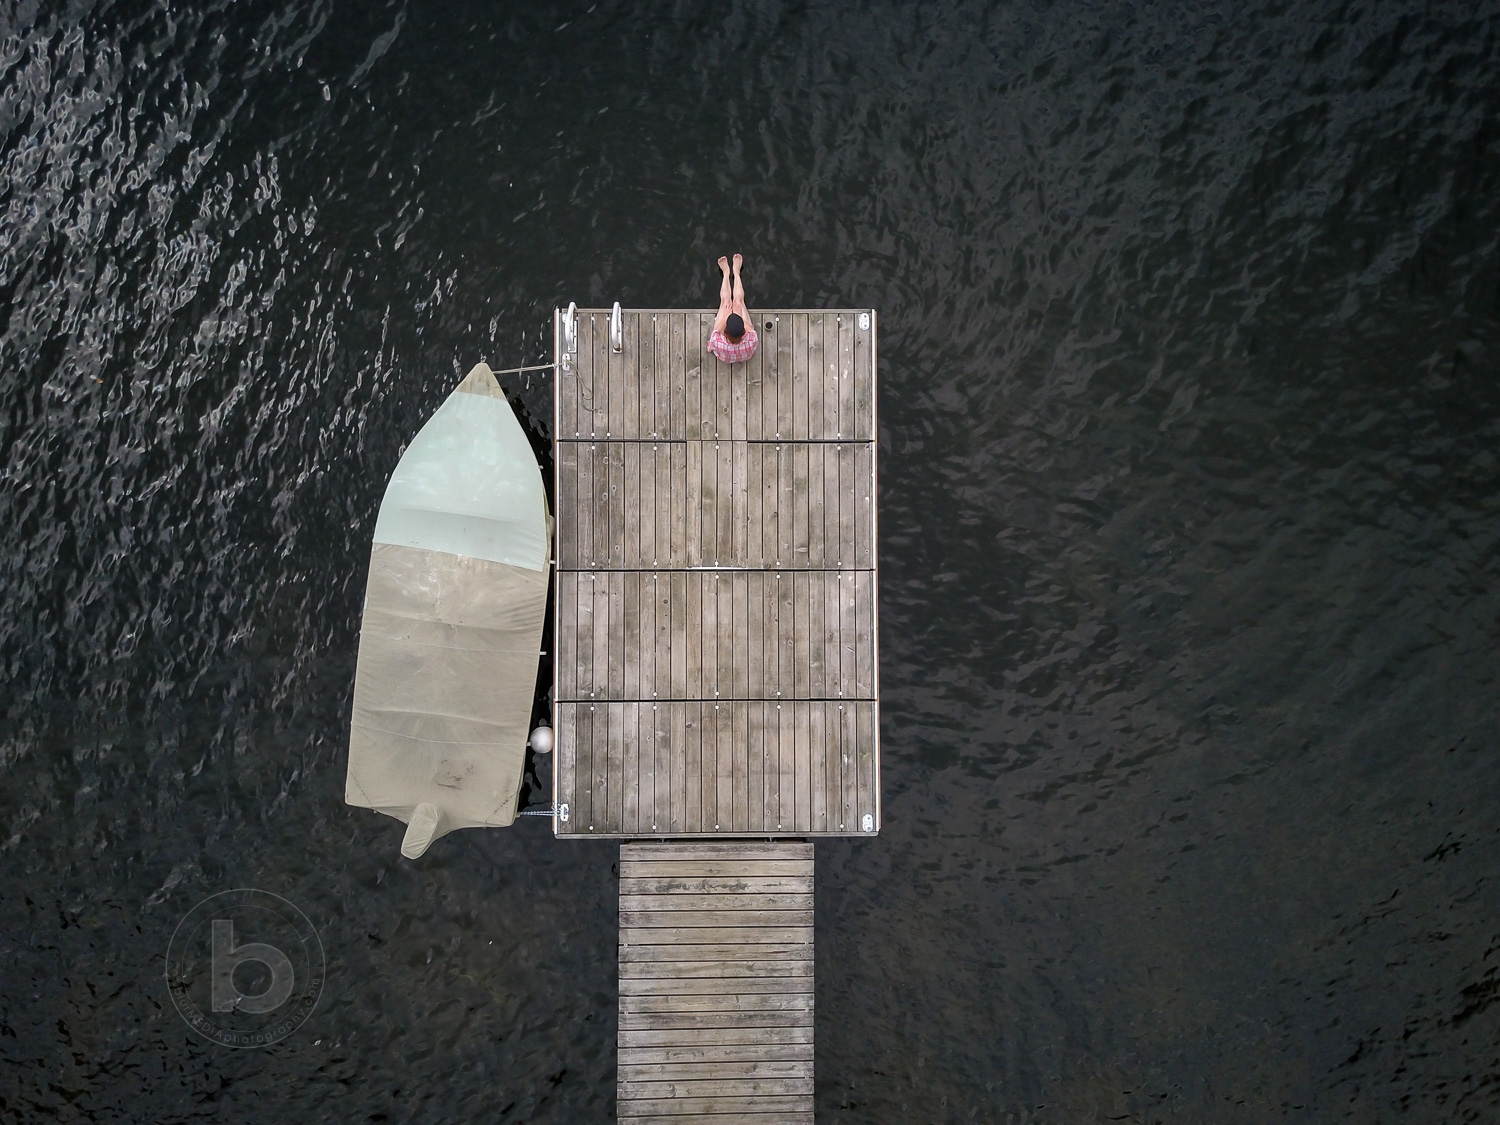 Aerial photo of a woman (40) sitting on a wooden dock at a lake in the Kawartha cottage region near Haliburton, Ontario, Canada